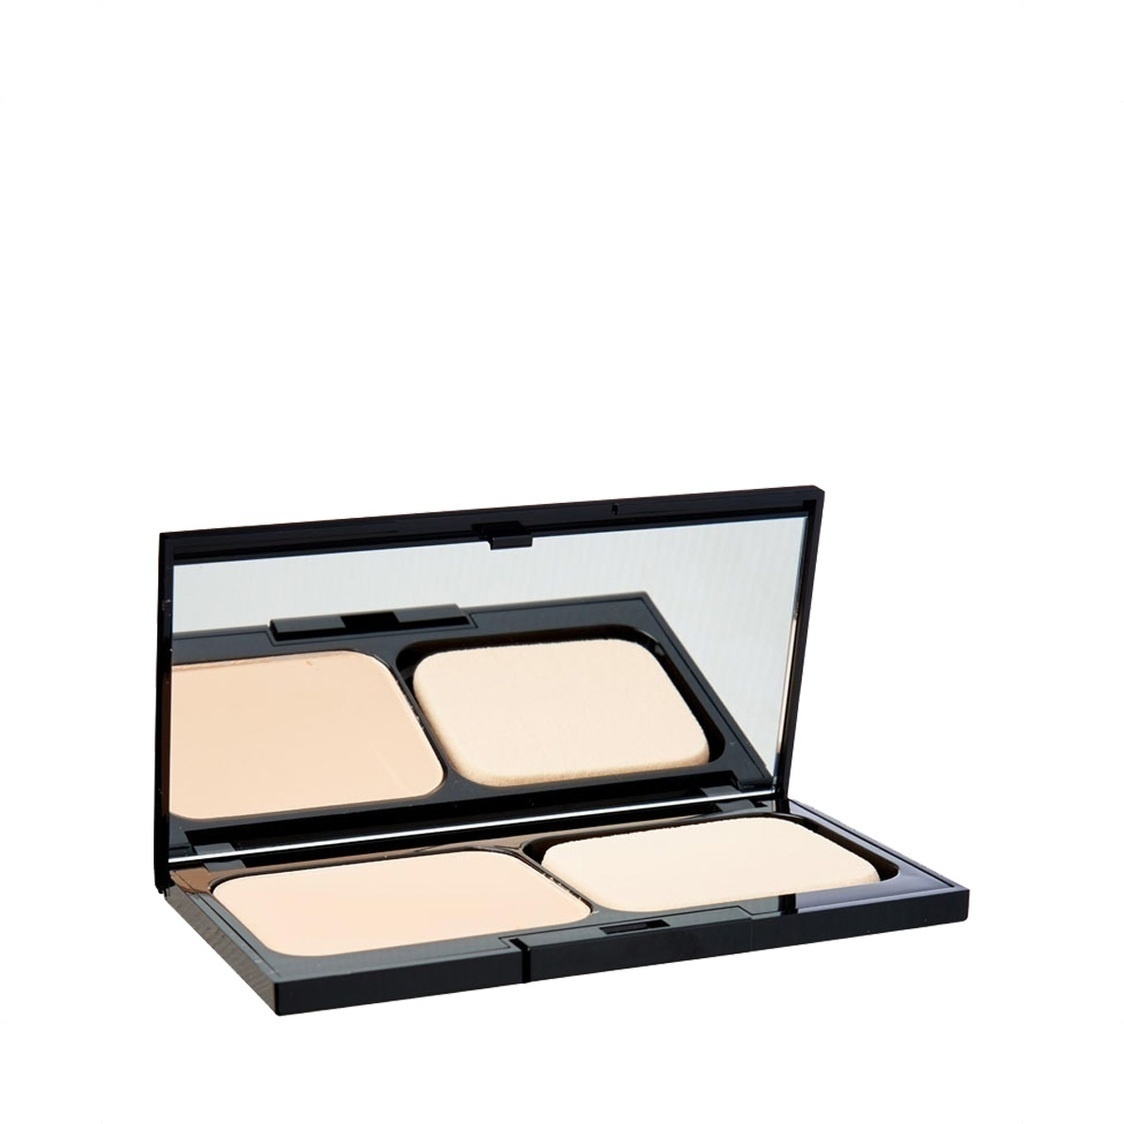 Colourstay 2 Way Foundation